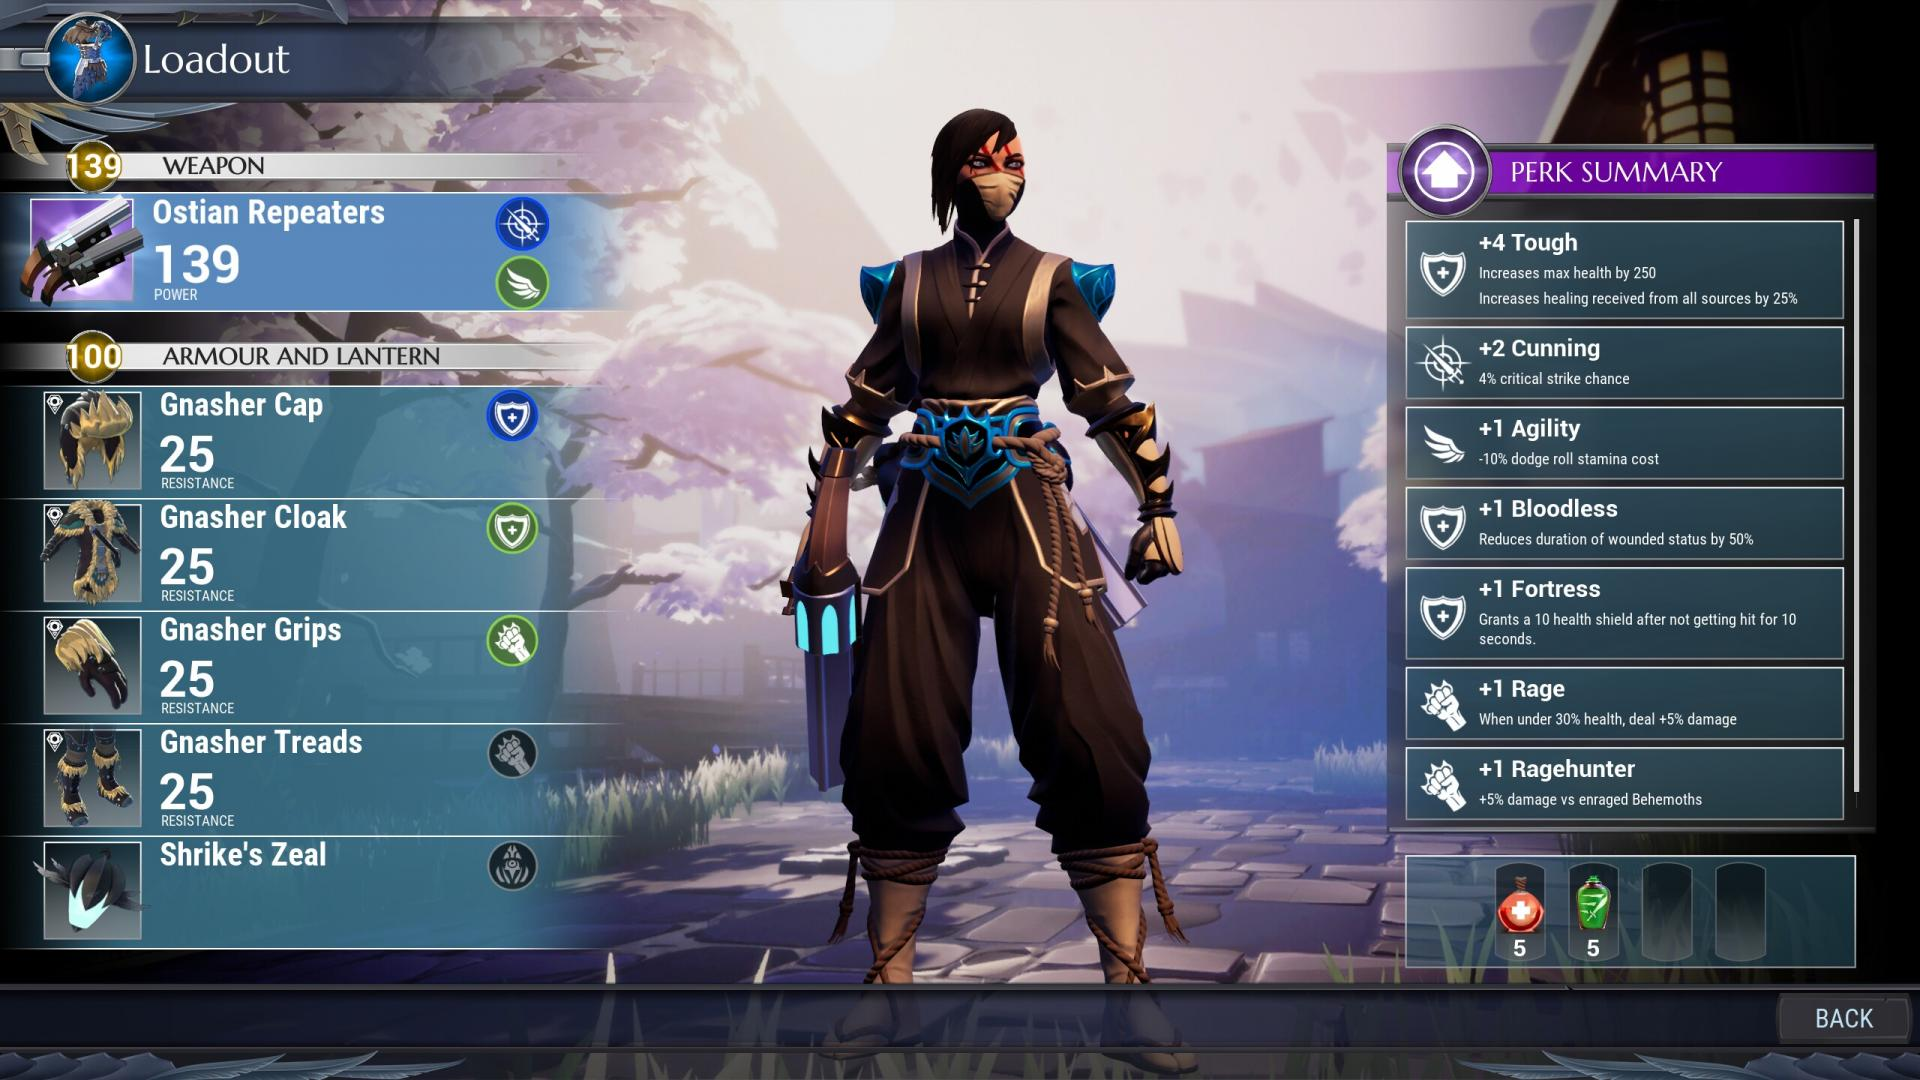 How To Get Repeaters In Dauntless